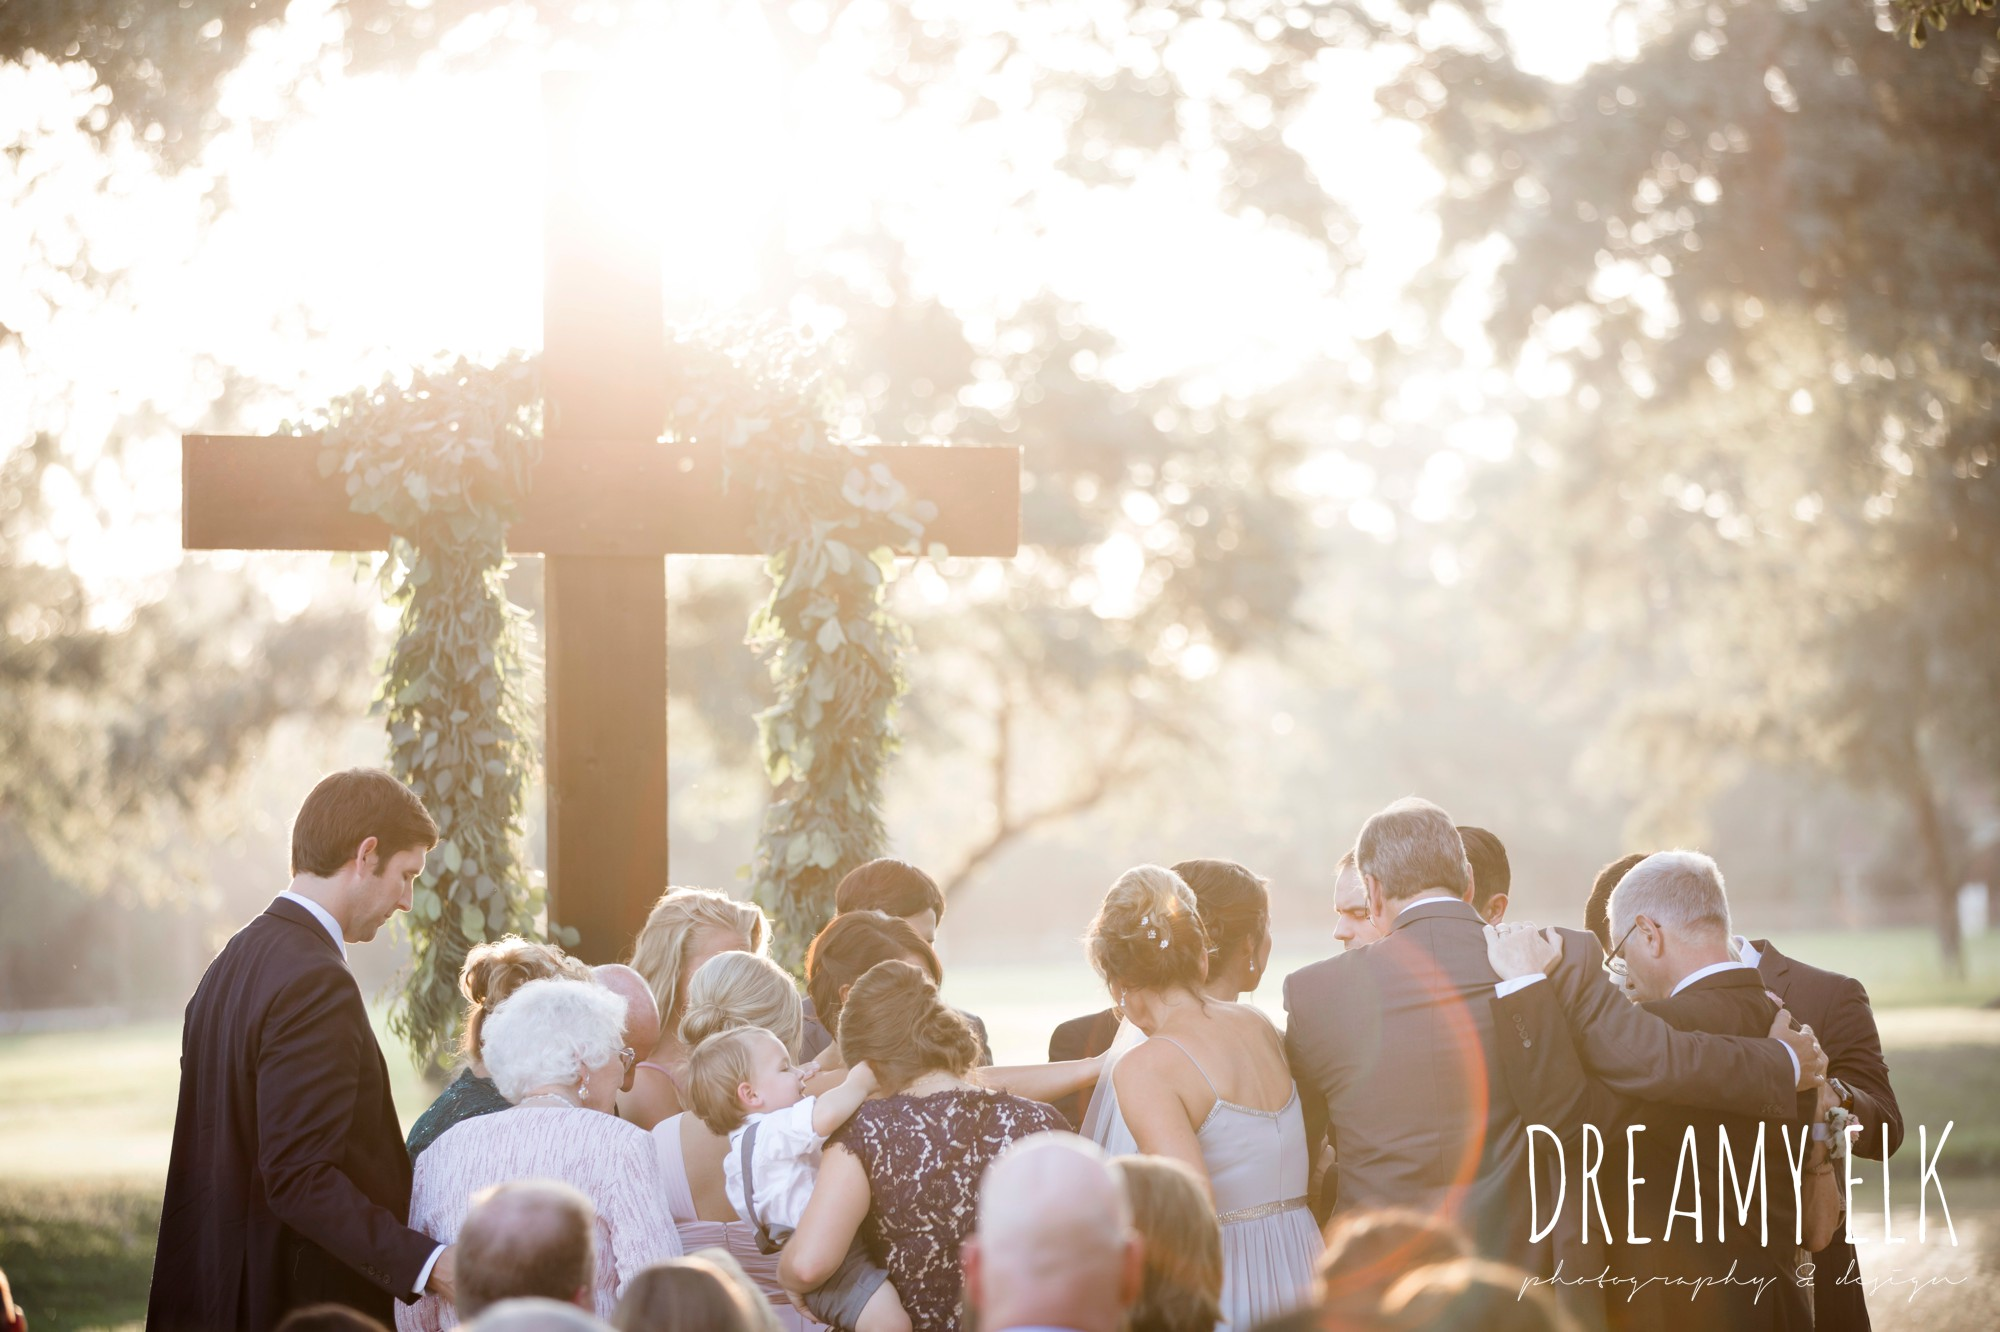 family prayer, sunset wedding ceremony, outdoor fall october wedding photo, blush and gray wedding, balmorhea weddings and events, dreamy elk photography and design, austin texas wedding photographer